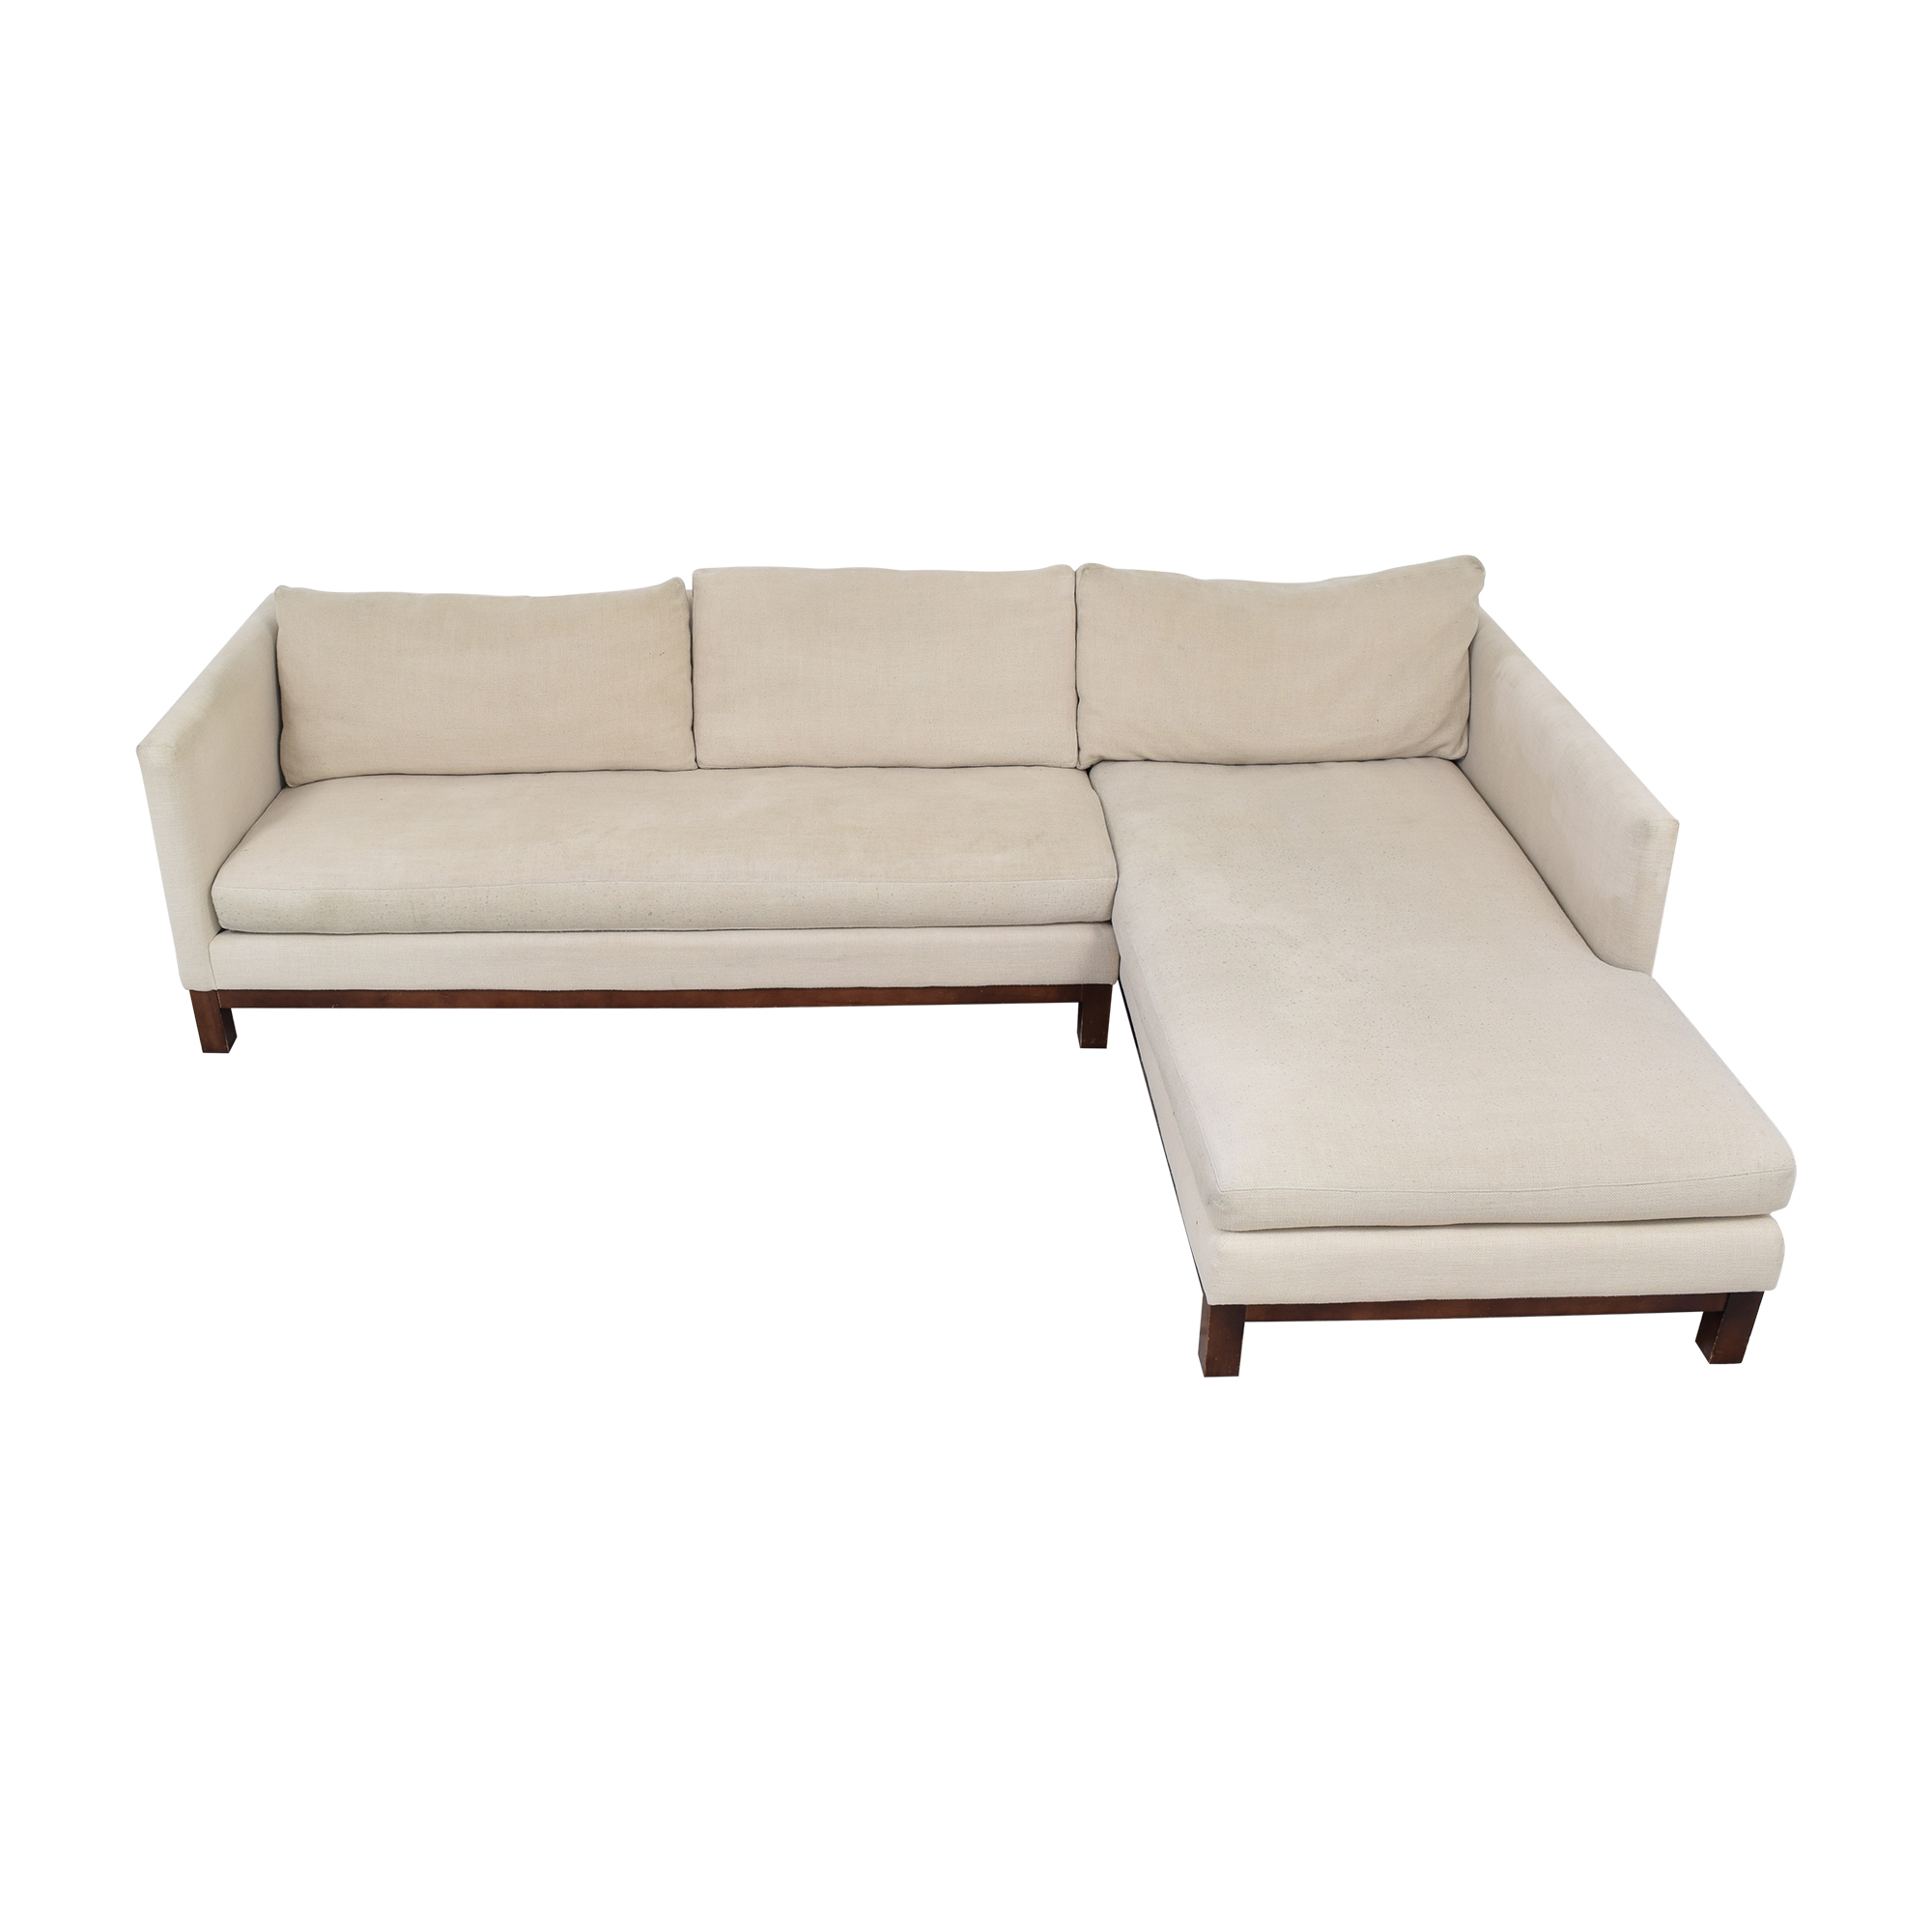 ABC Carpet & Home ABC Carpet & Home Cobble Hill Sectional Sofa white